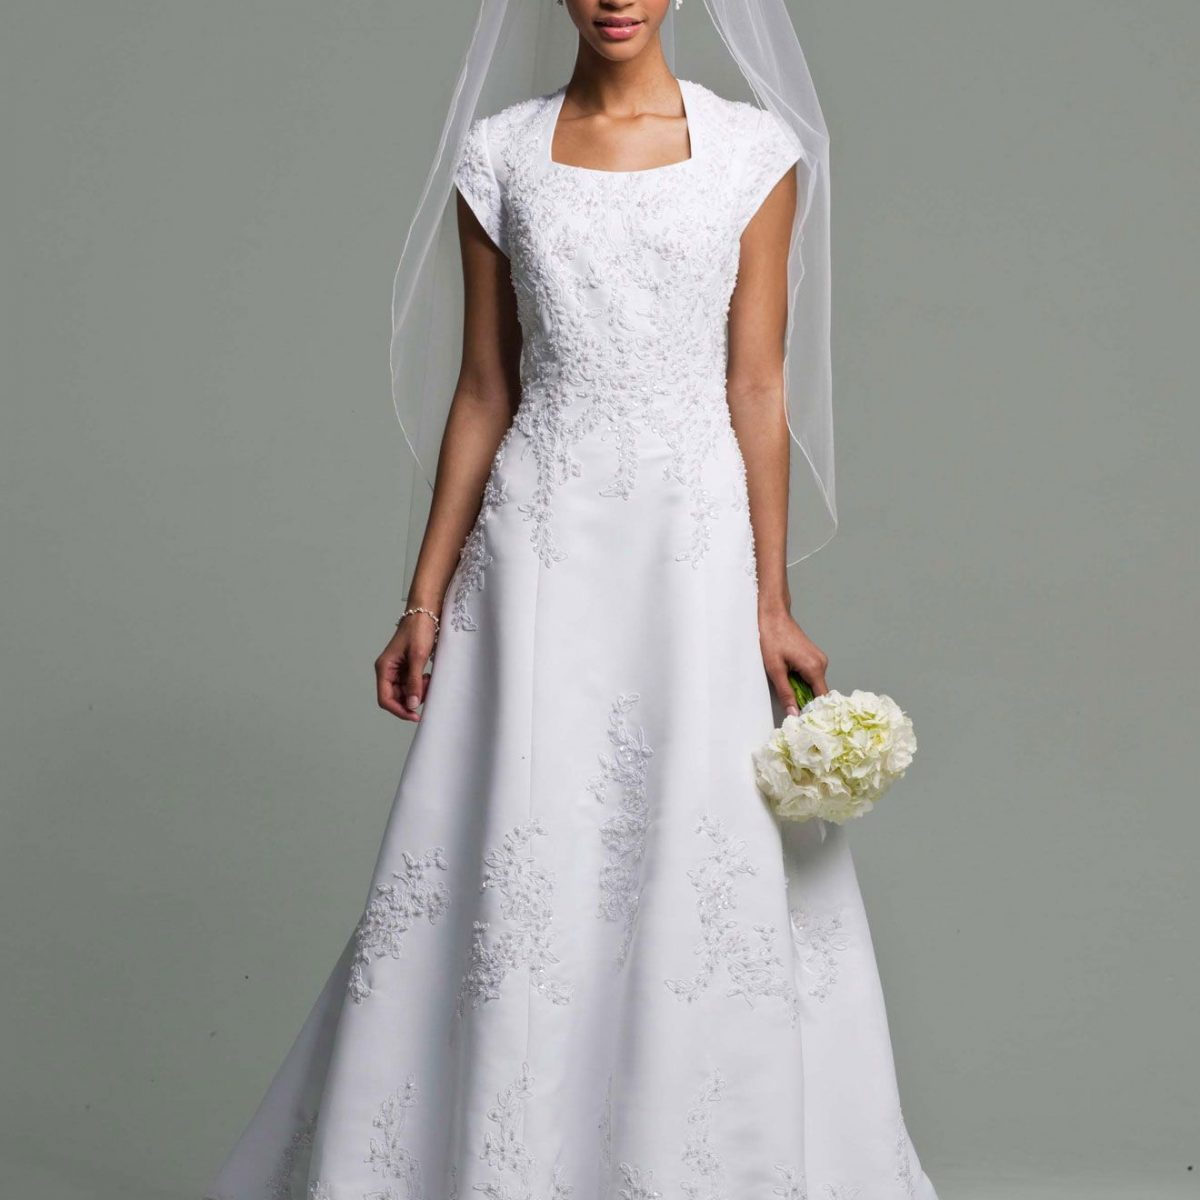 Lace wedding dress under 100 dollars with long veilcherry for Wedding dress 100 dollars